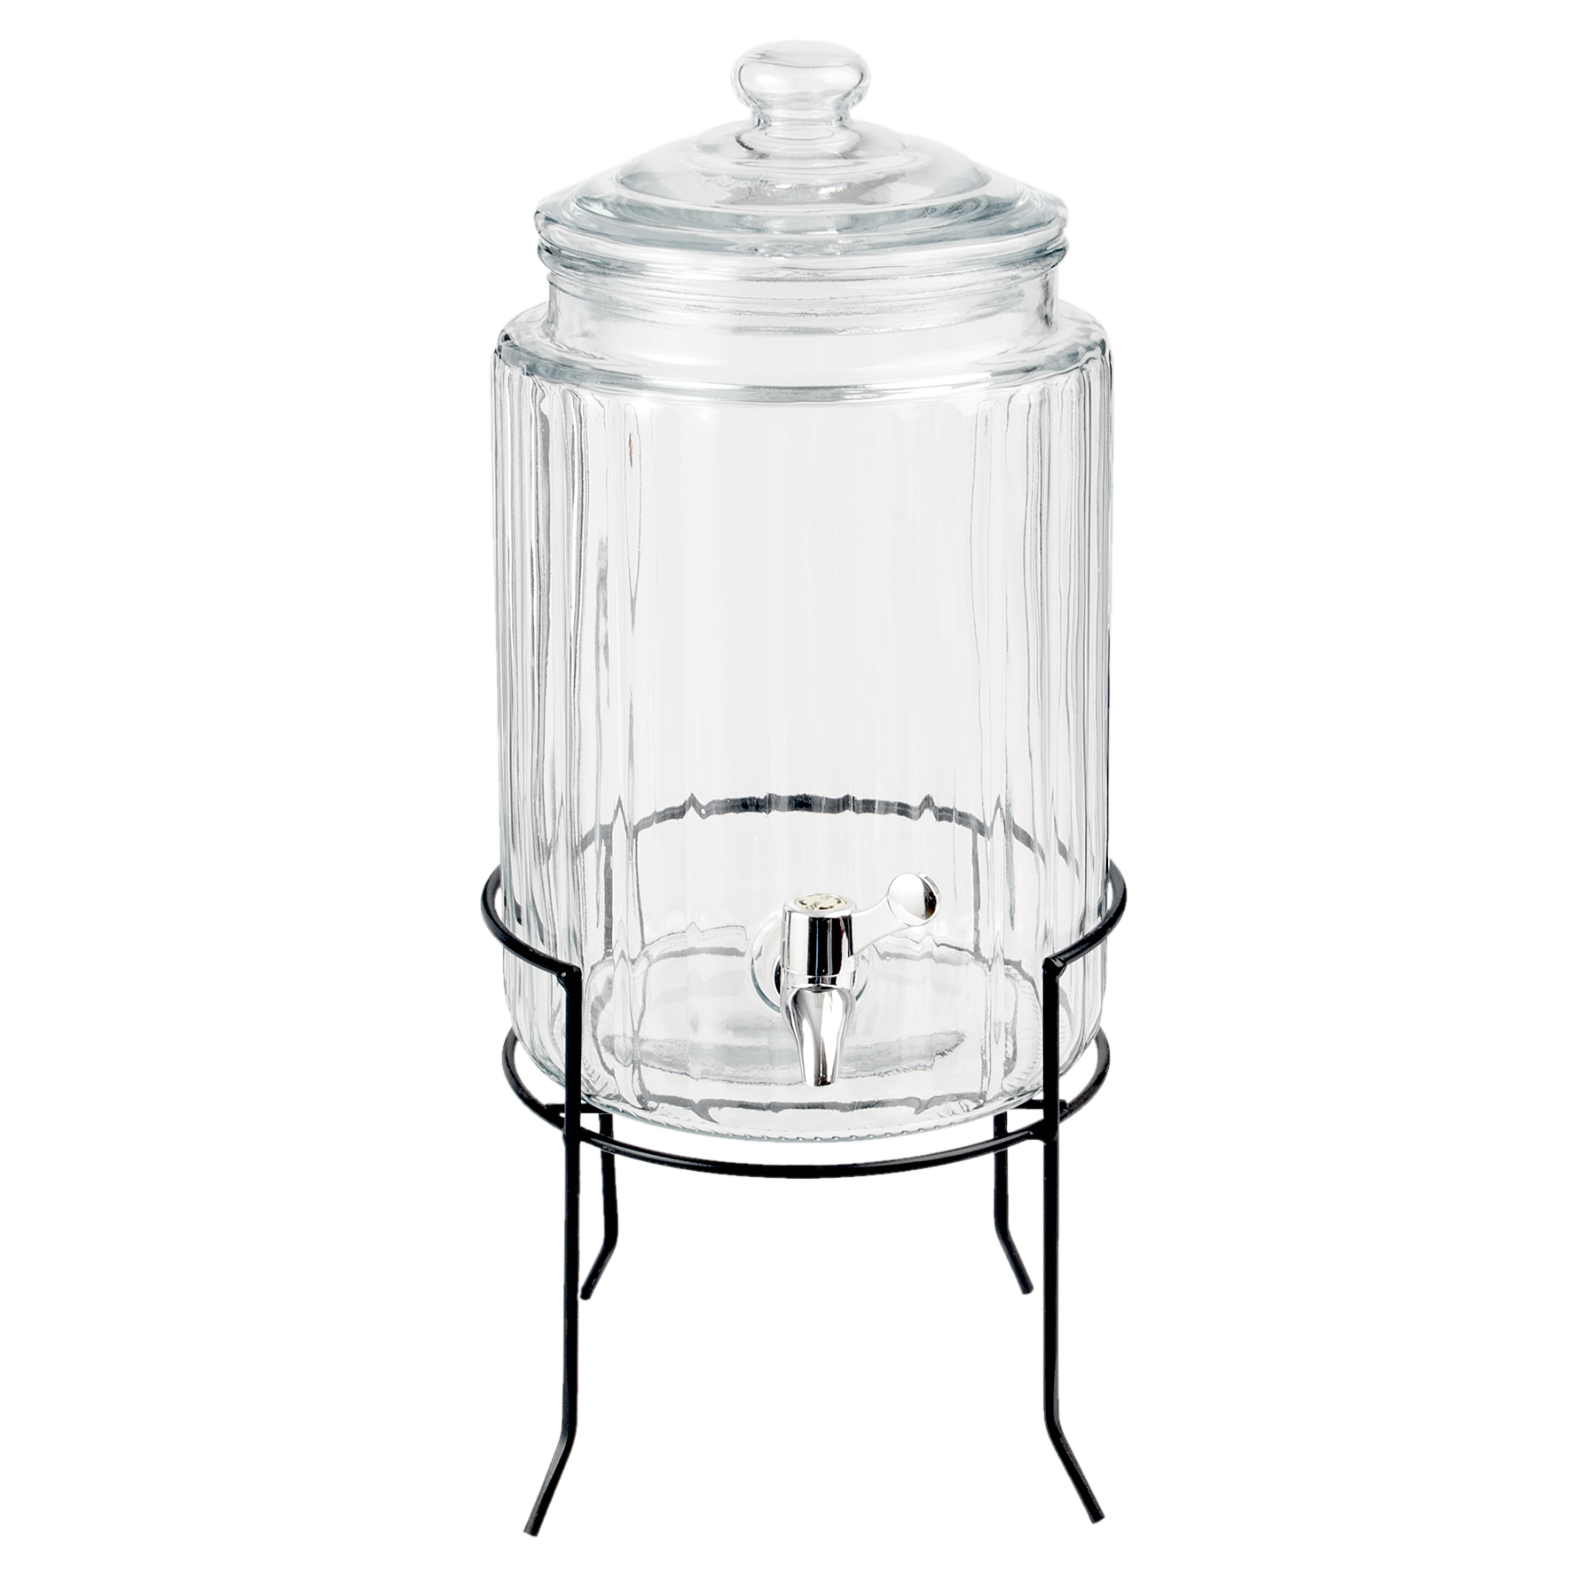 Decoration de grand vase transparent - Grand vase transparent ...